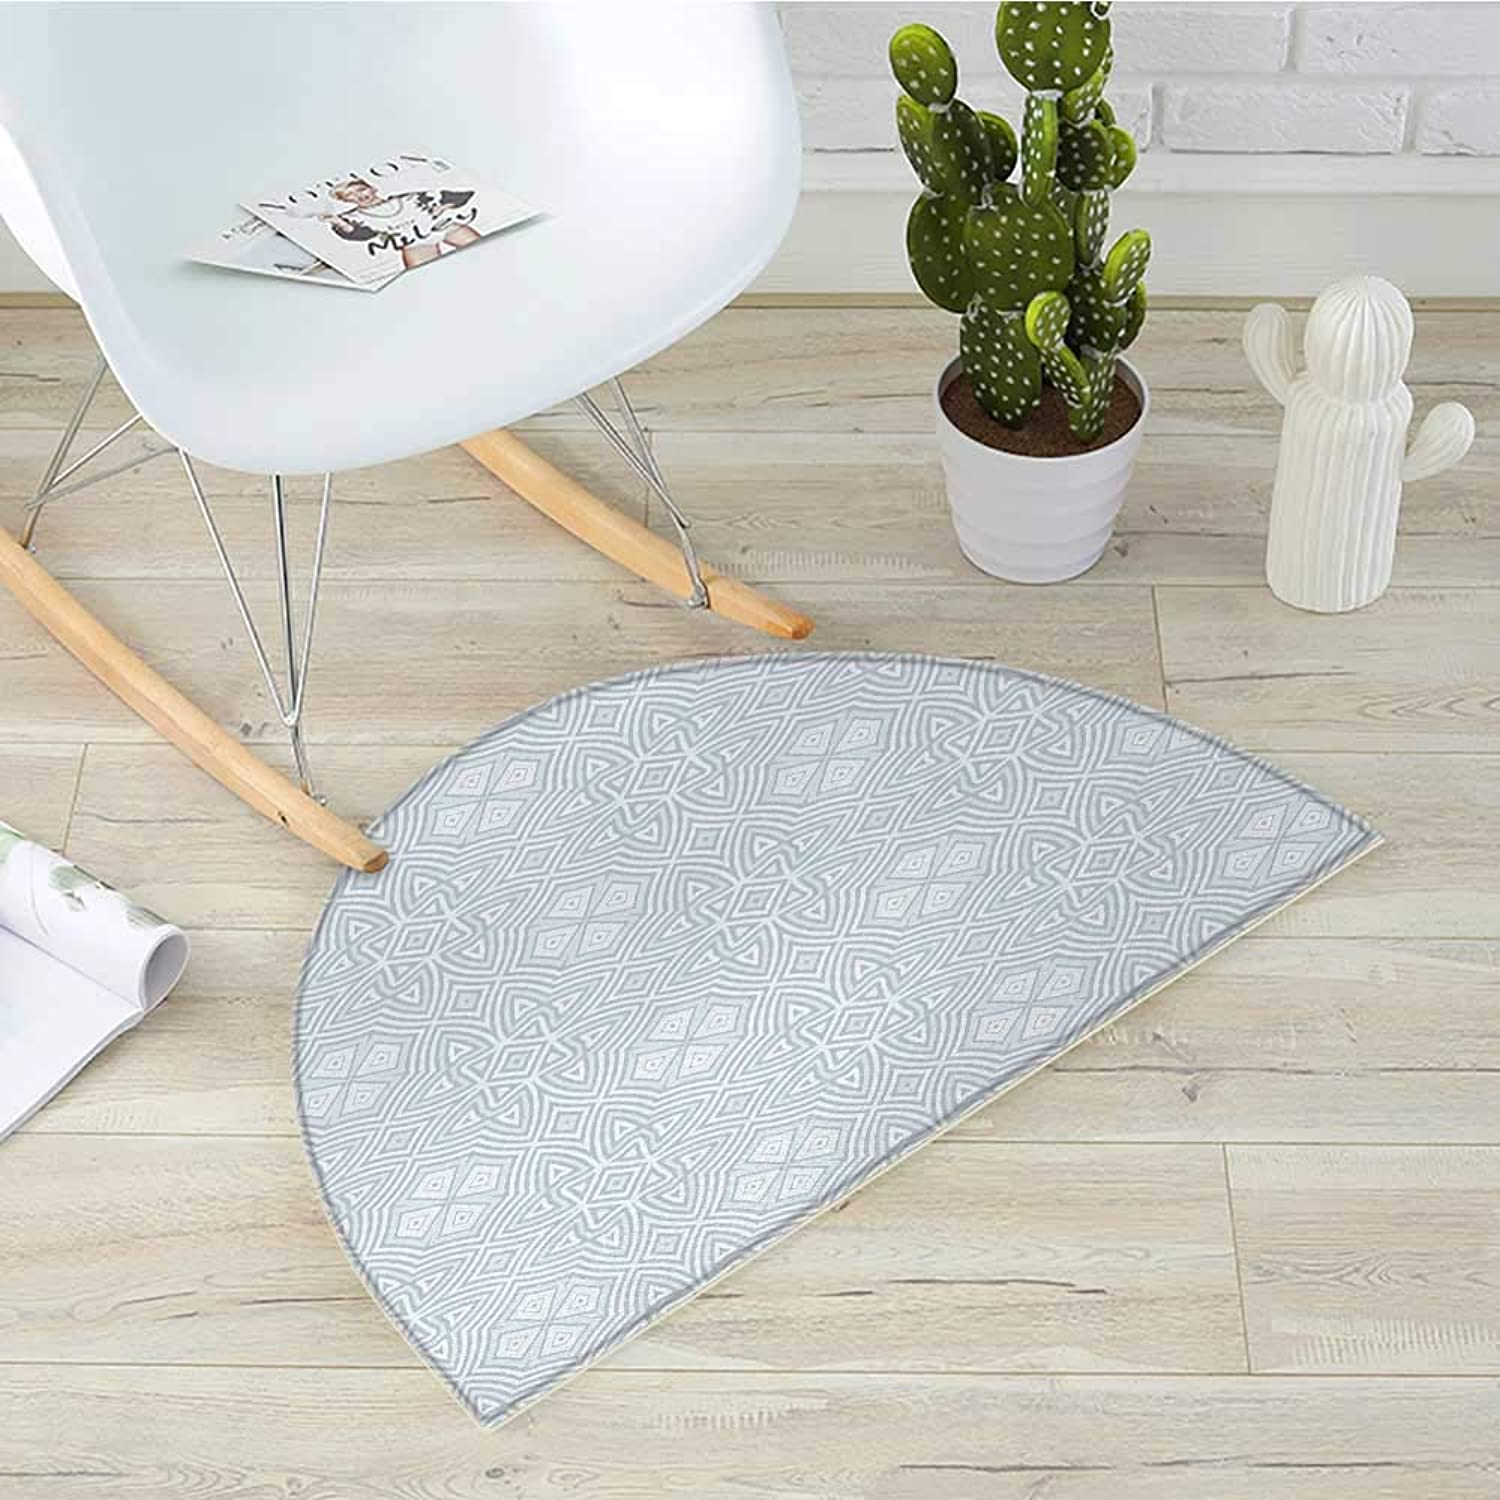 Celtic Semicircle Doormat Pale colord Square and Star Shaped Original Retro Tribal Celtic Knot Patterns Halfmoon doormats H 19.7  xD 31.5  Soft bluee Grey